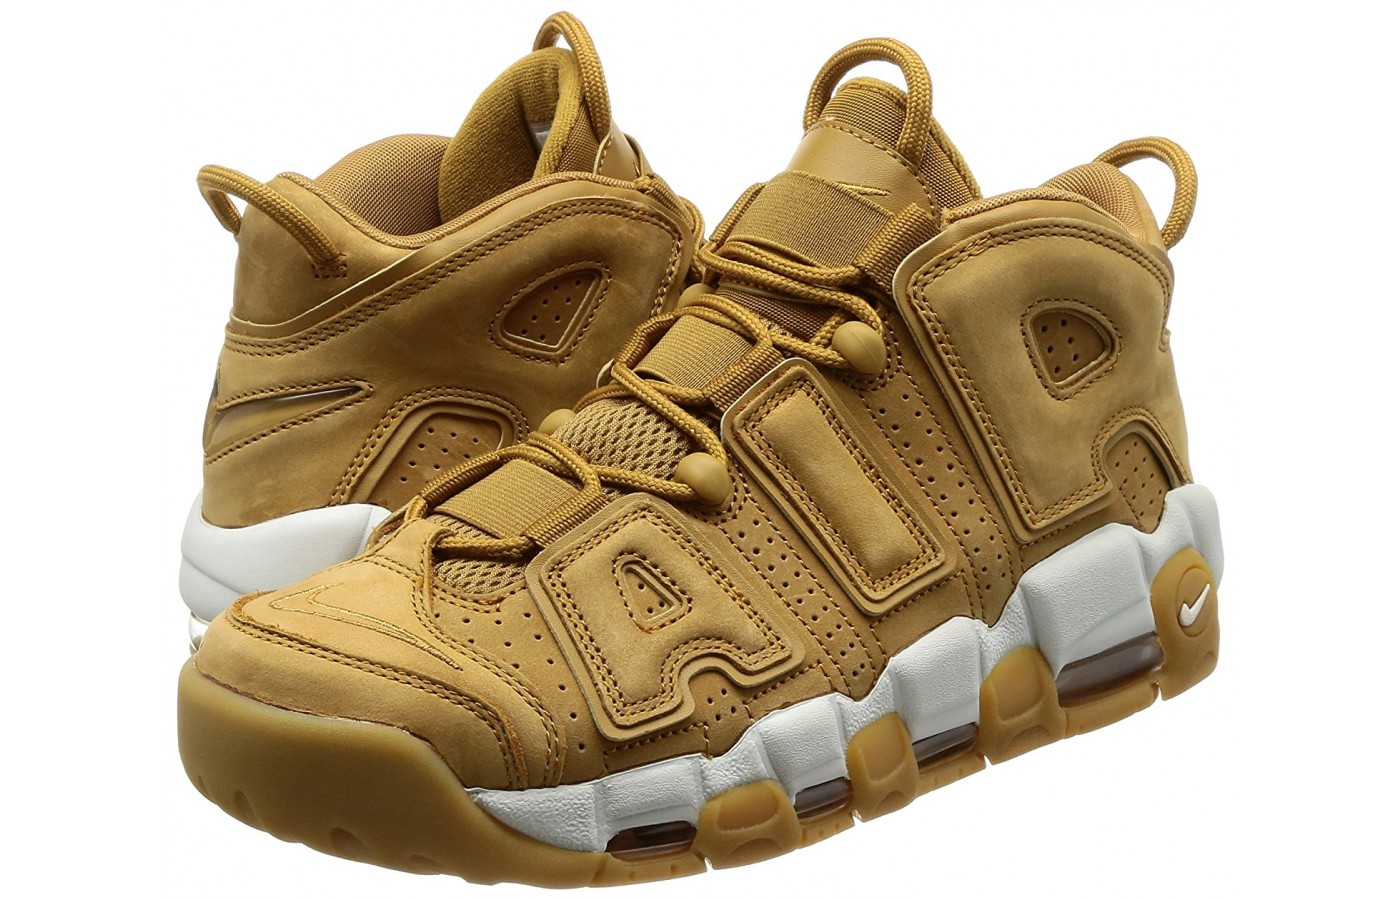 pair of Nike Air More Uptempo